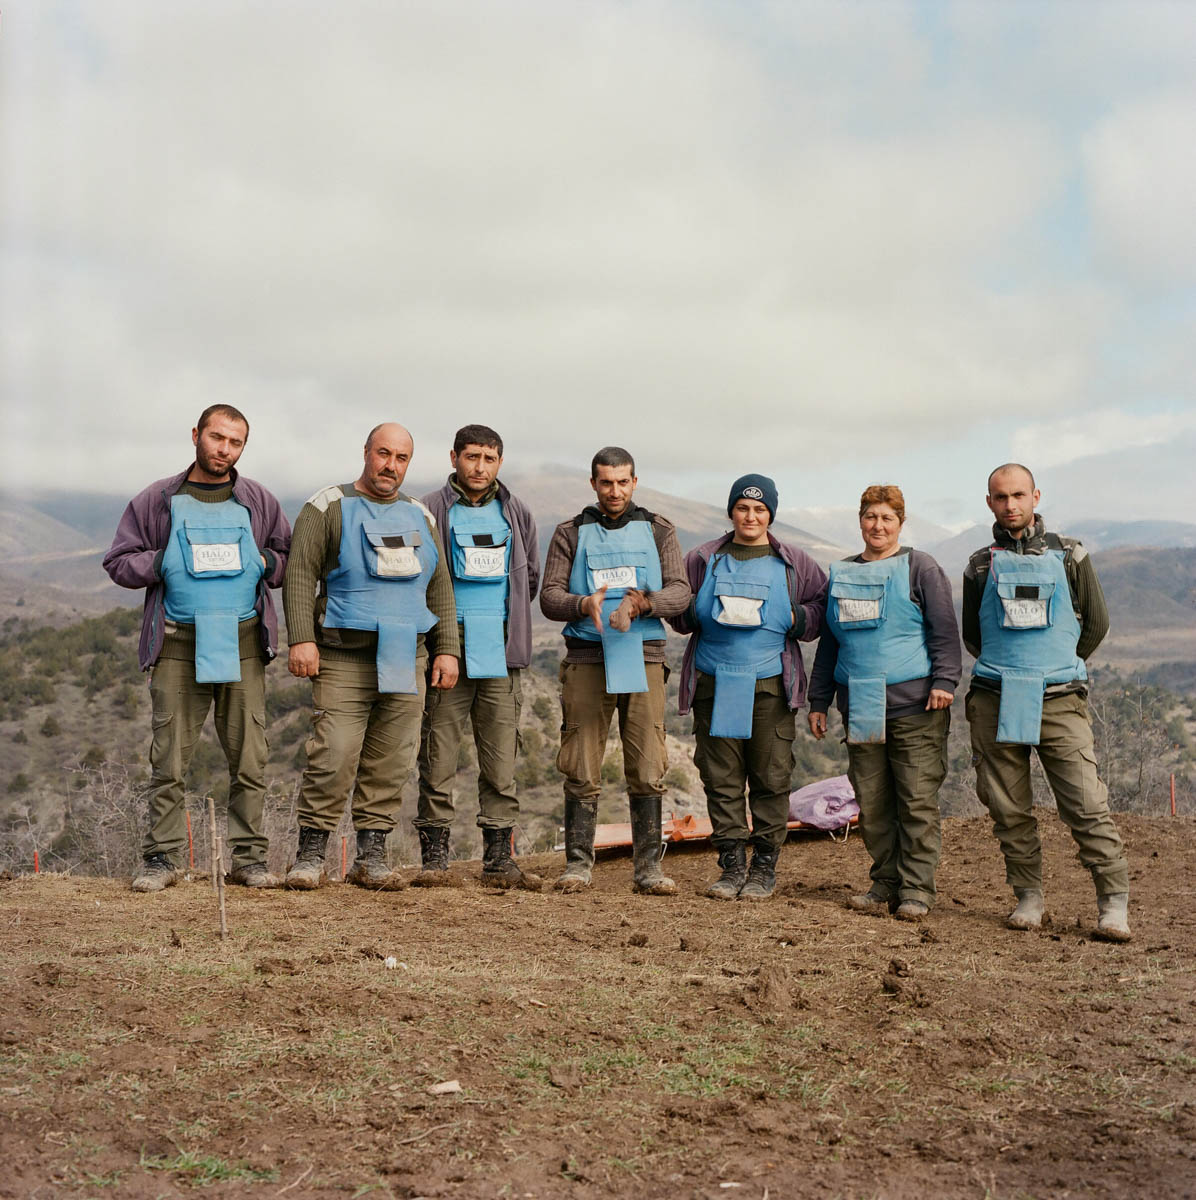 A HALO de-mining team at the Aghavnatun minefield. Once they have finished their work here, the land can be used safely again for multiple purposes - from grazing livestock to being a place where local kids can play and wander without fear. [Eva Clifford/Al Jazeera]